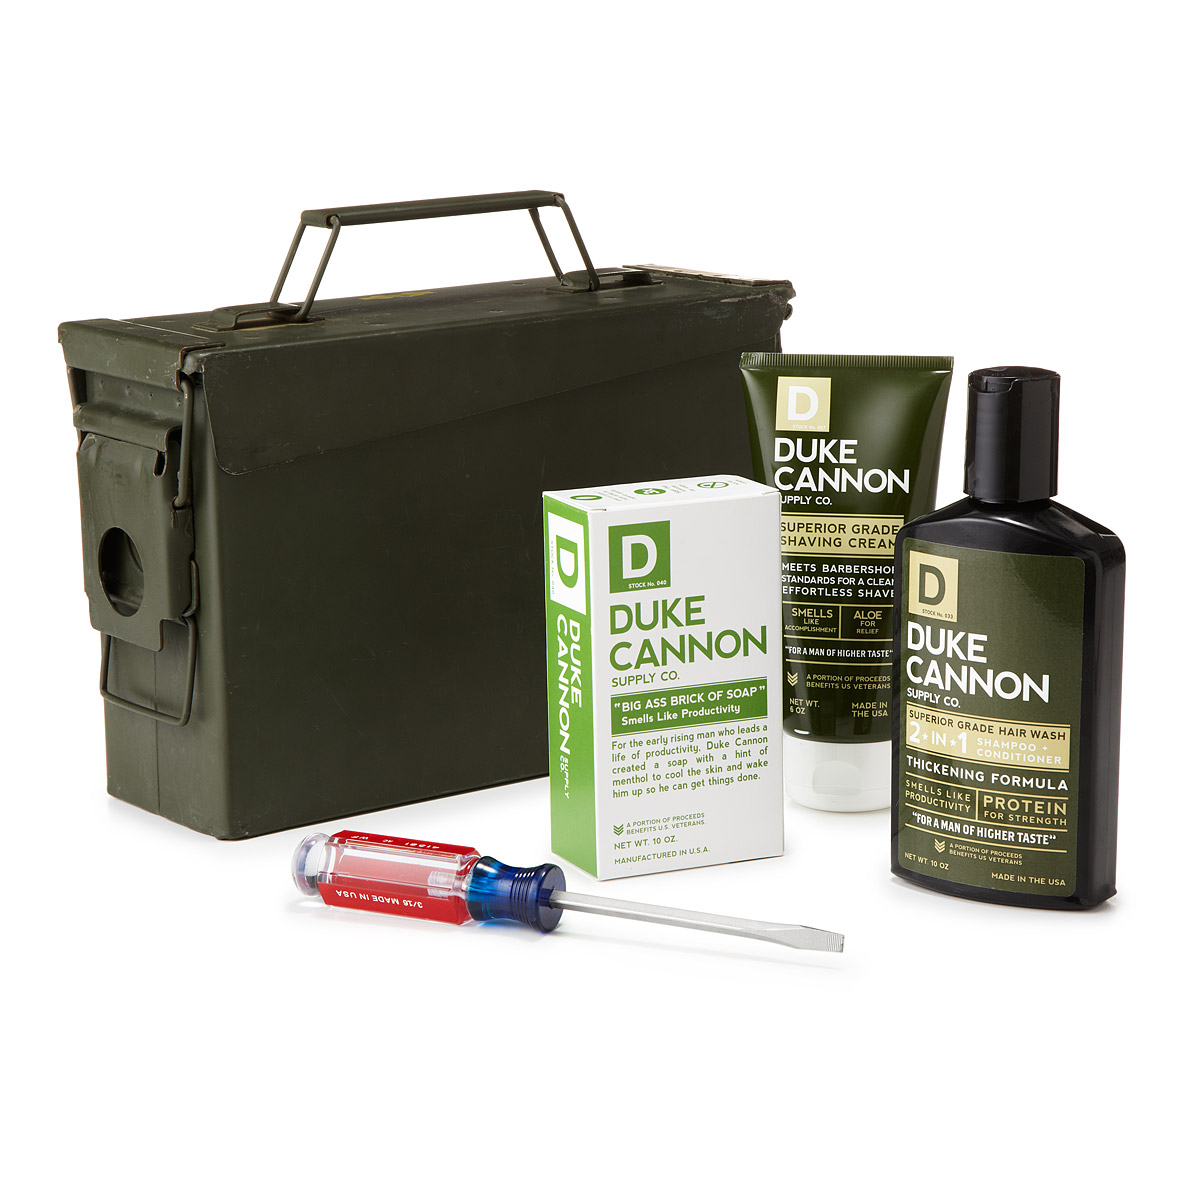 The US Army Grooming Kit is a top groomsman gift for 2015